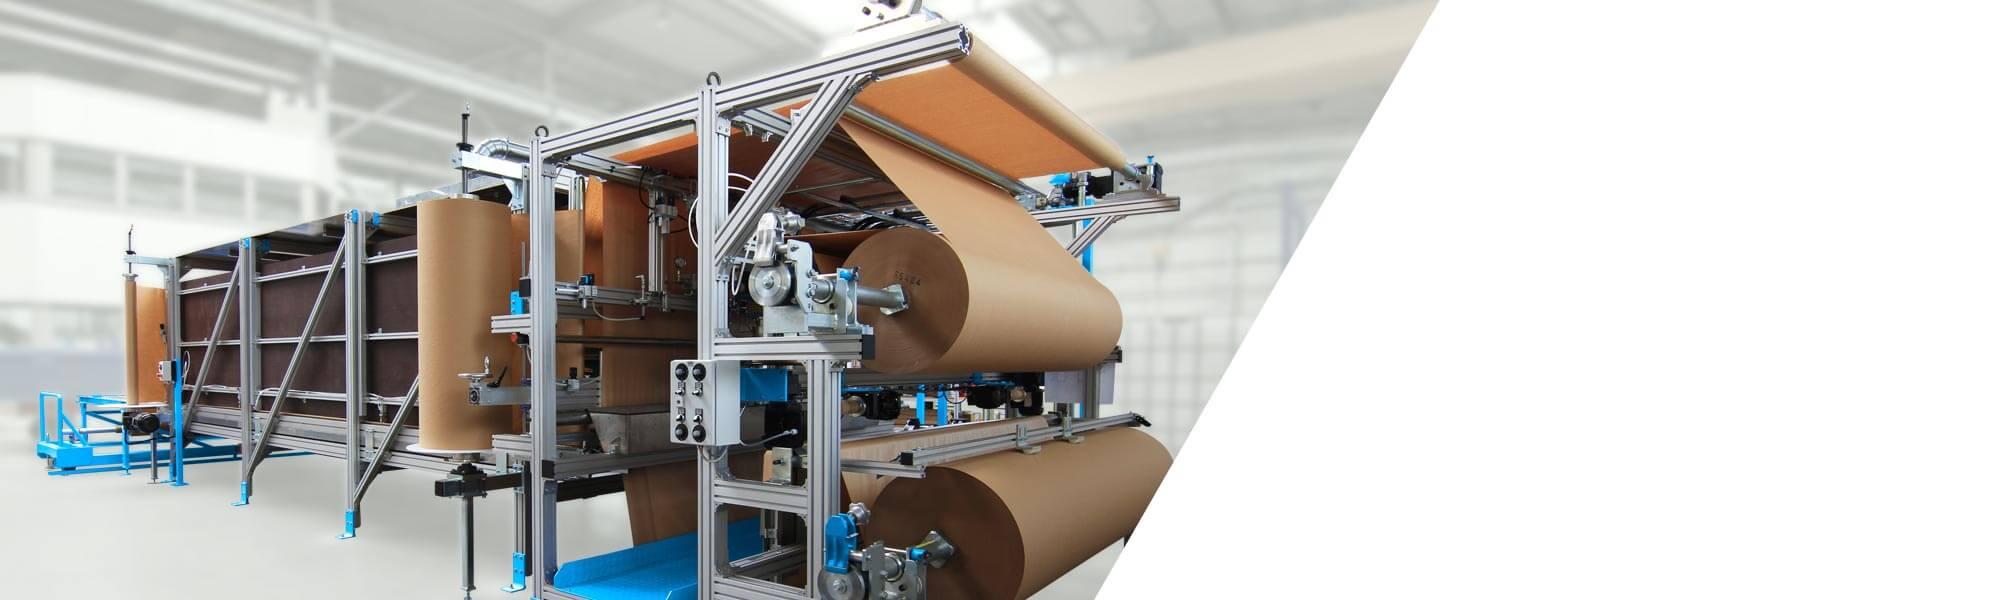 Ultra-compact plants for the continuous production of slabstock foams